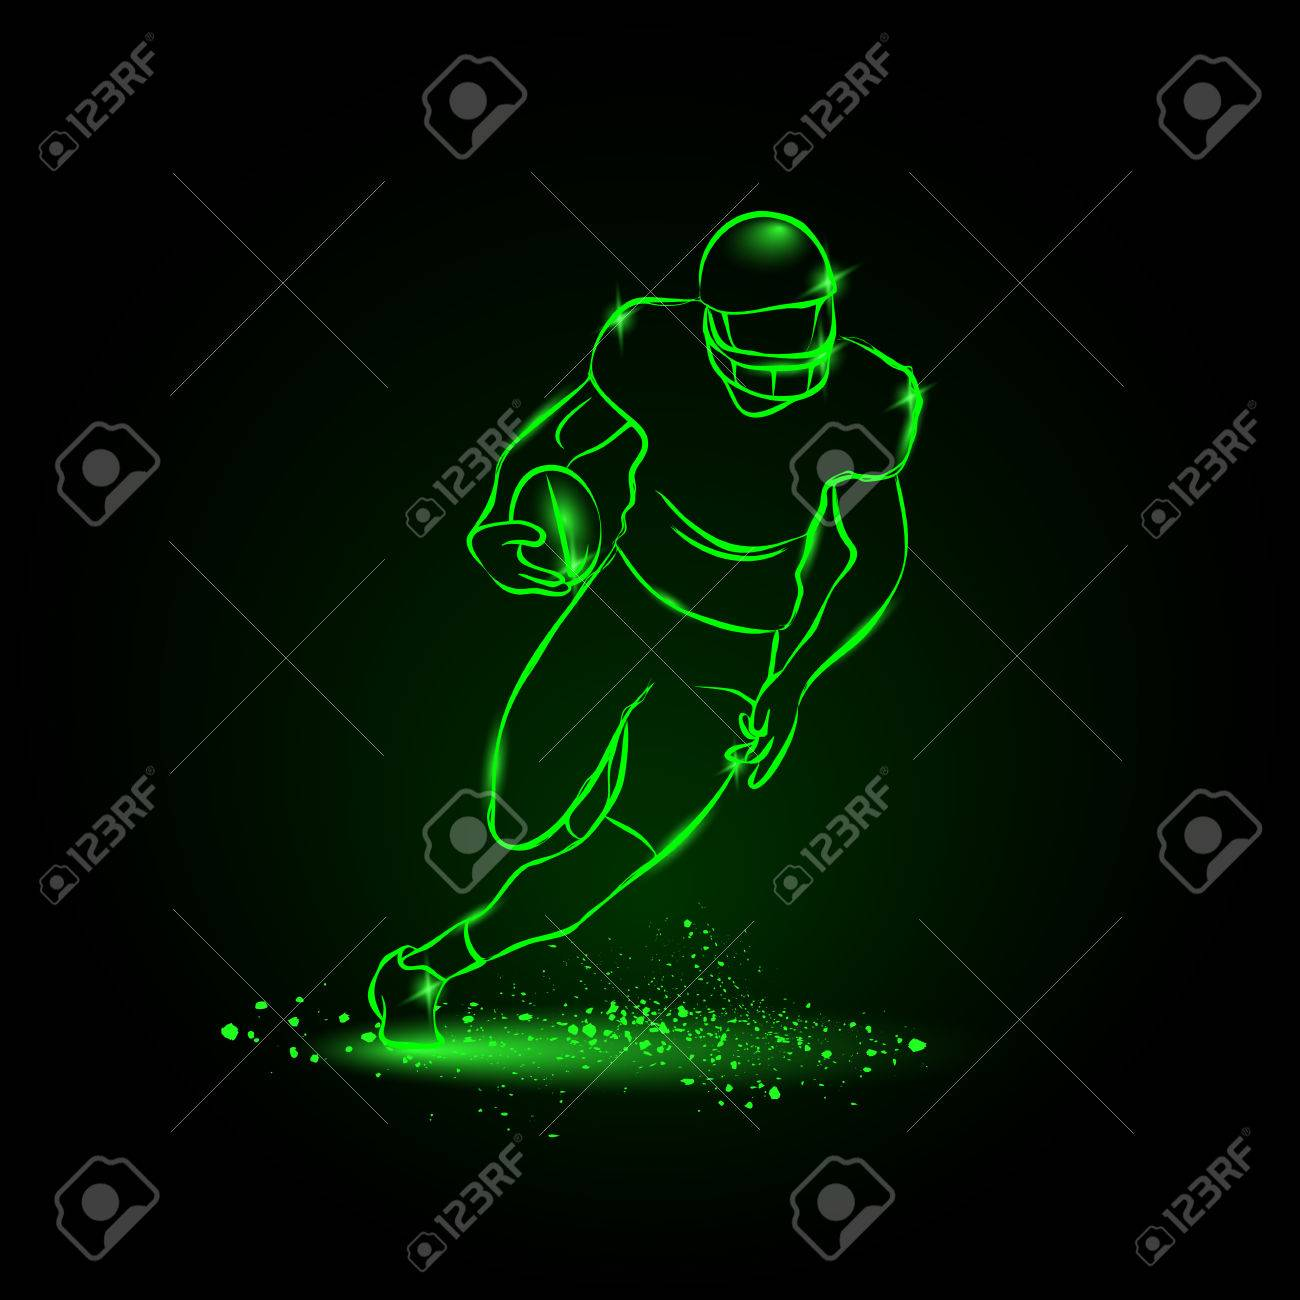 Football. The player runs away with the ball. neon style - 50194437